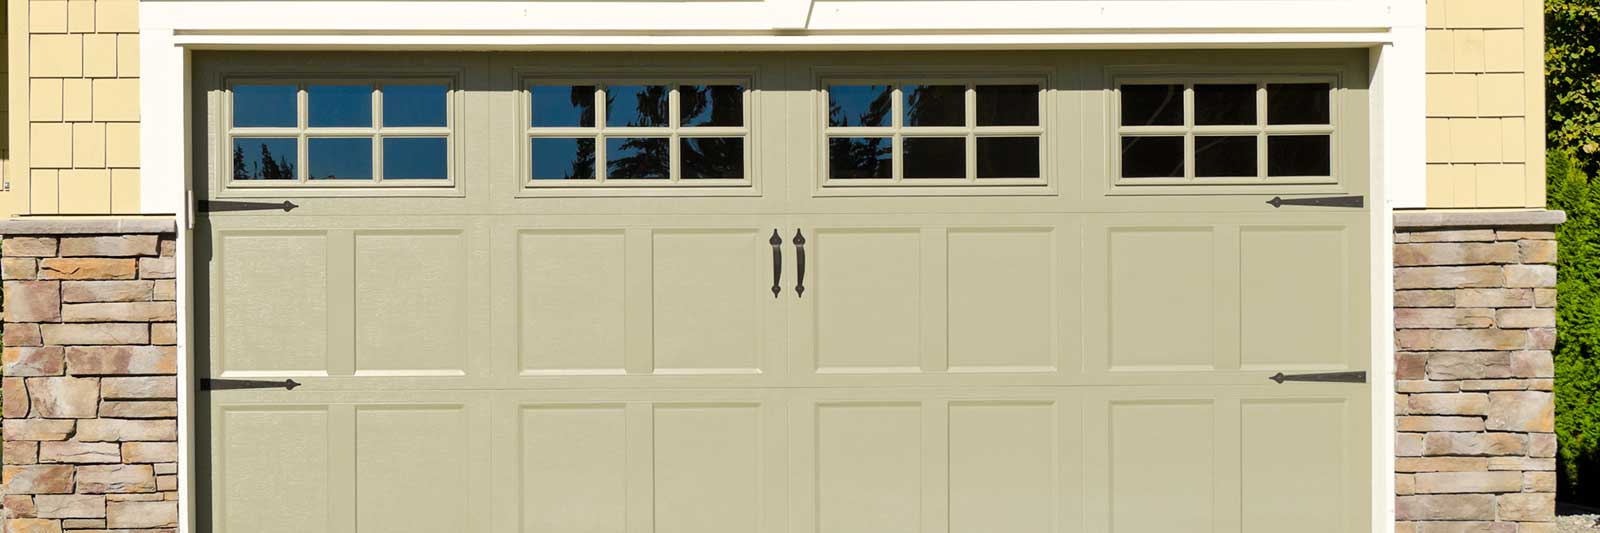 garage door repair ft worth tx on track garage doors